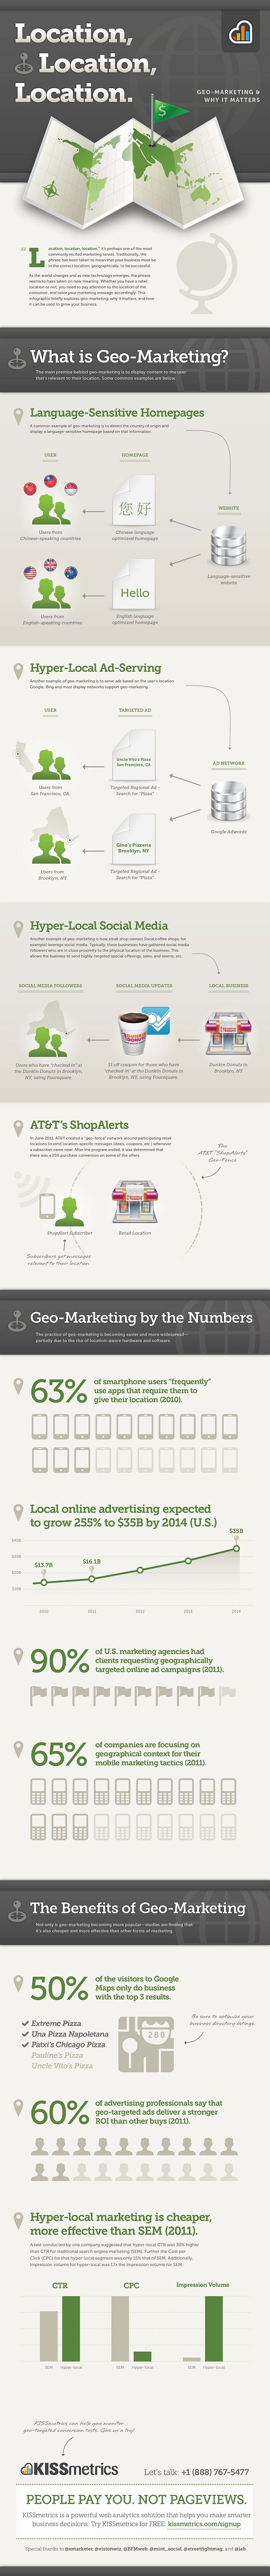 Location, Location, Location – Geo-marketing & Why it Matters [Infographic]